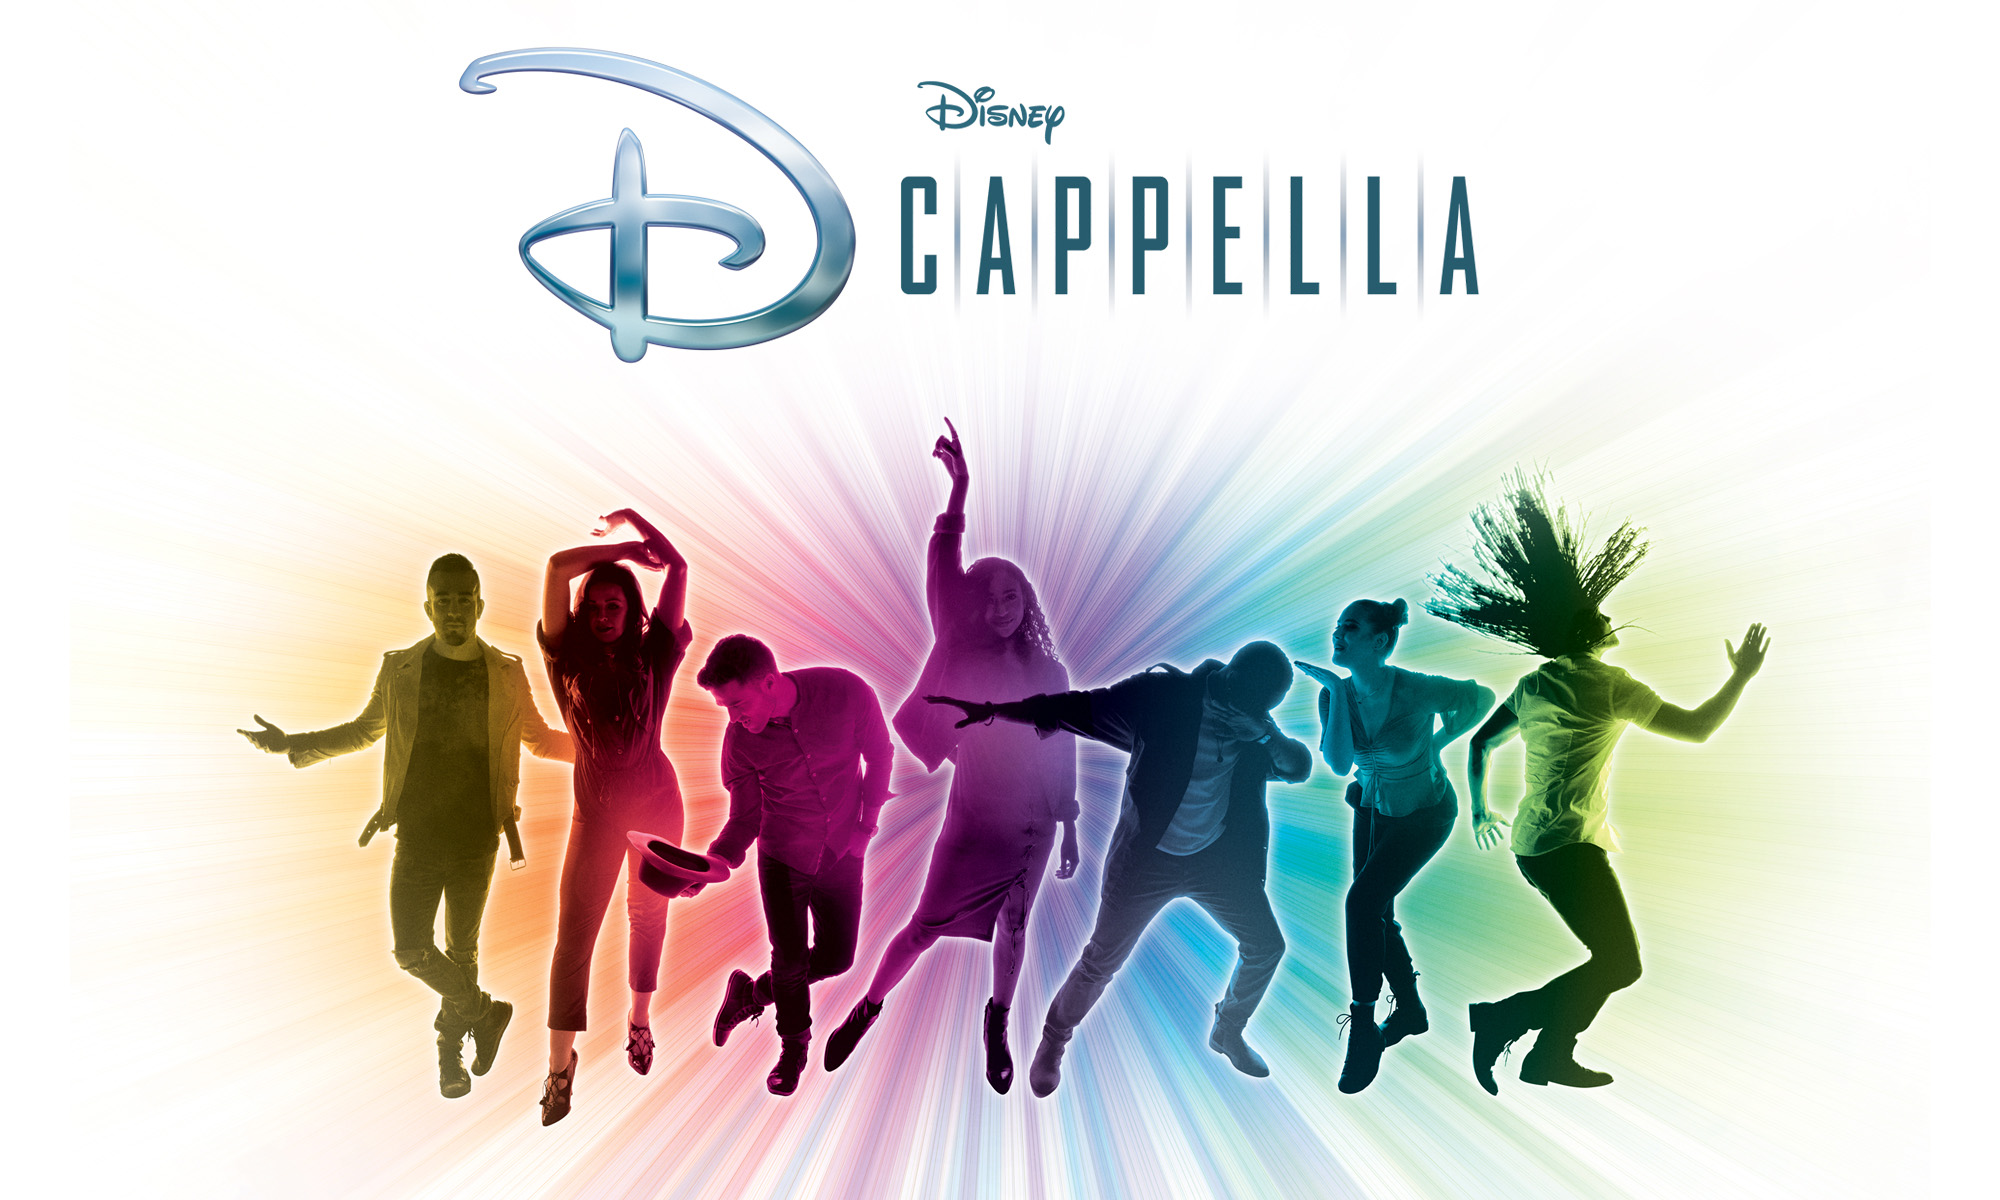 DCappella at Kings Theatre